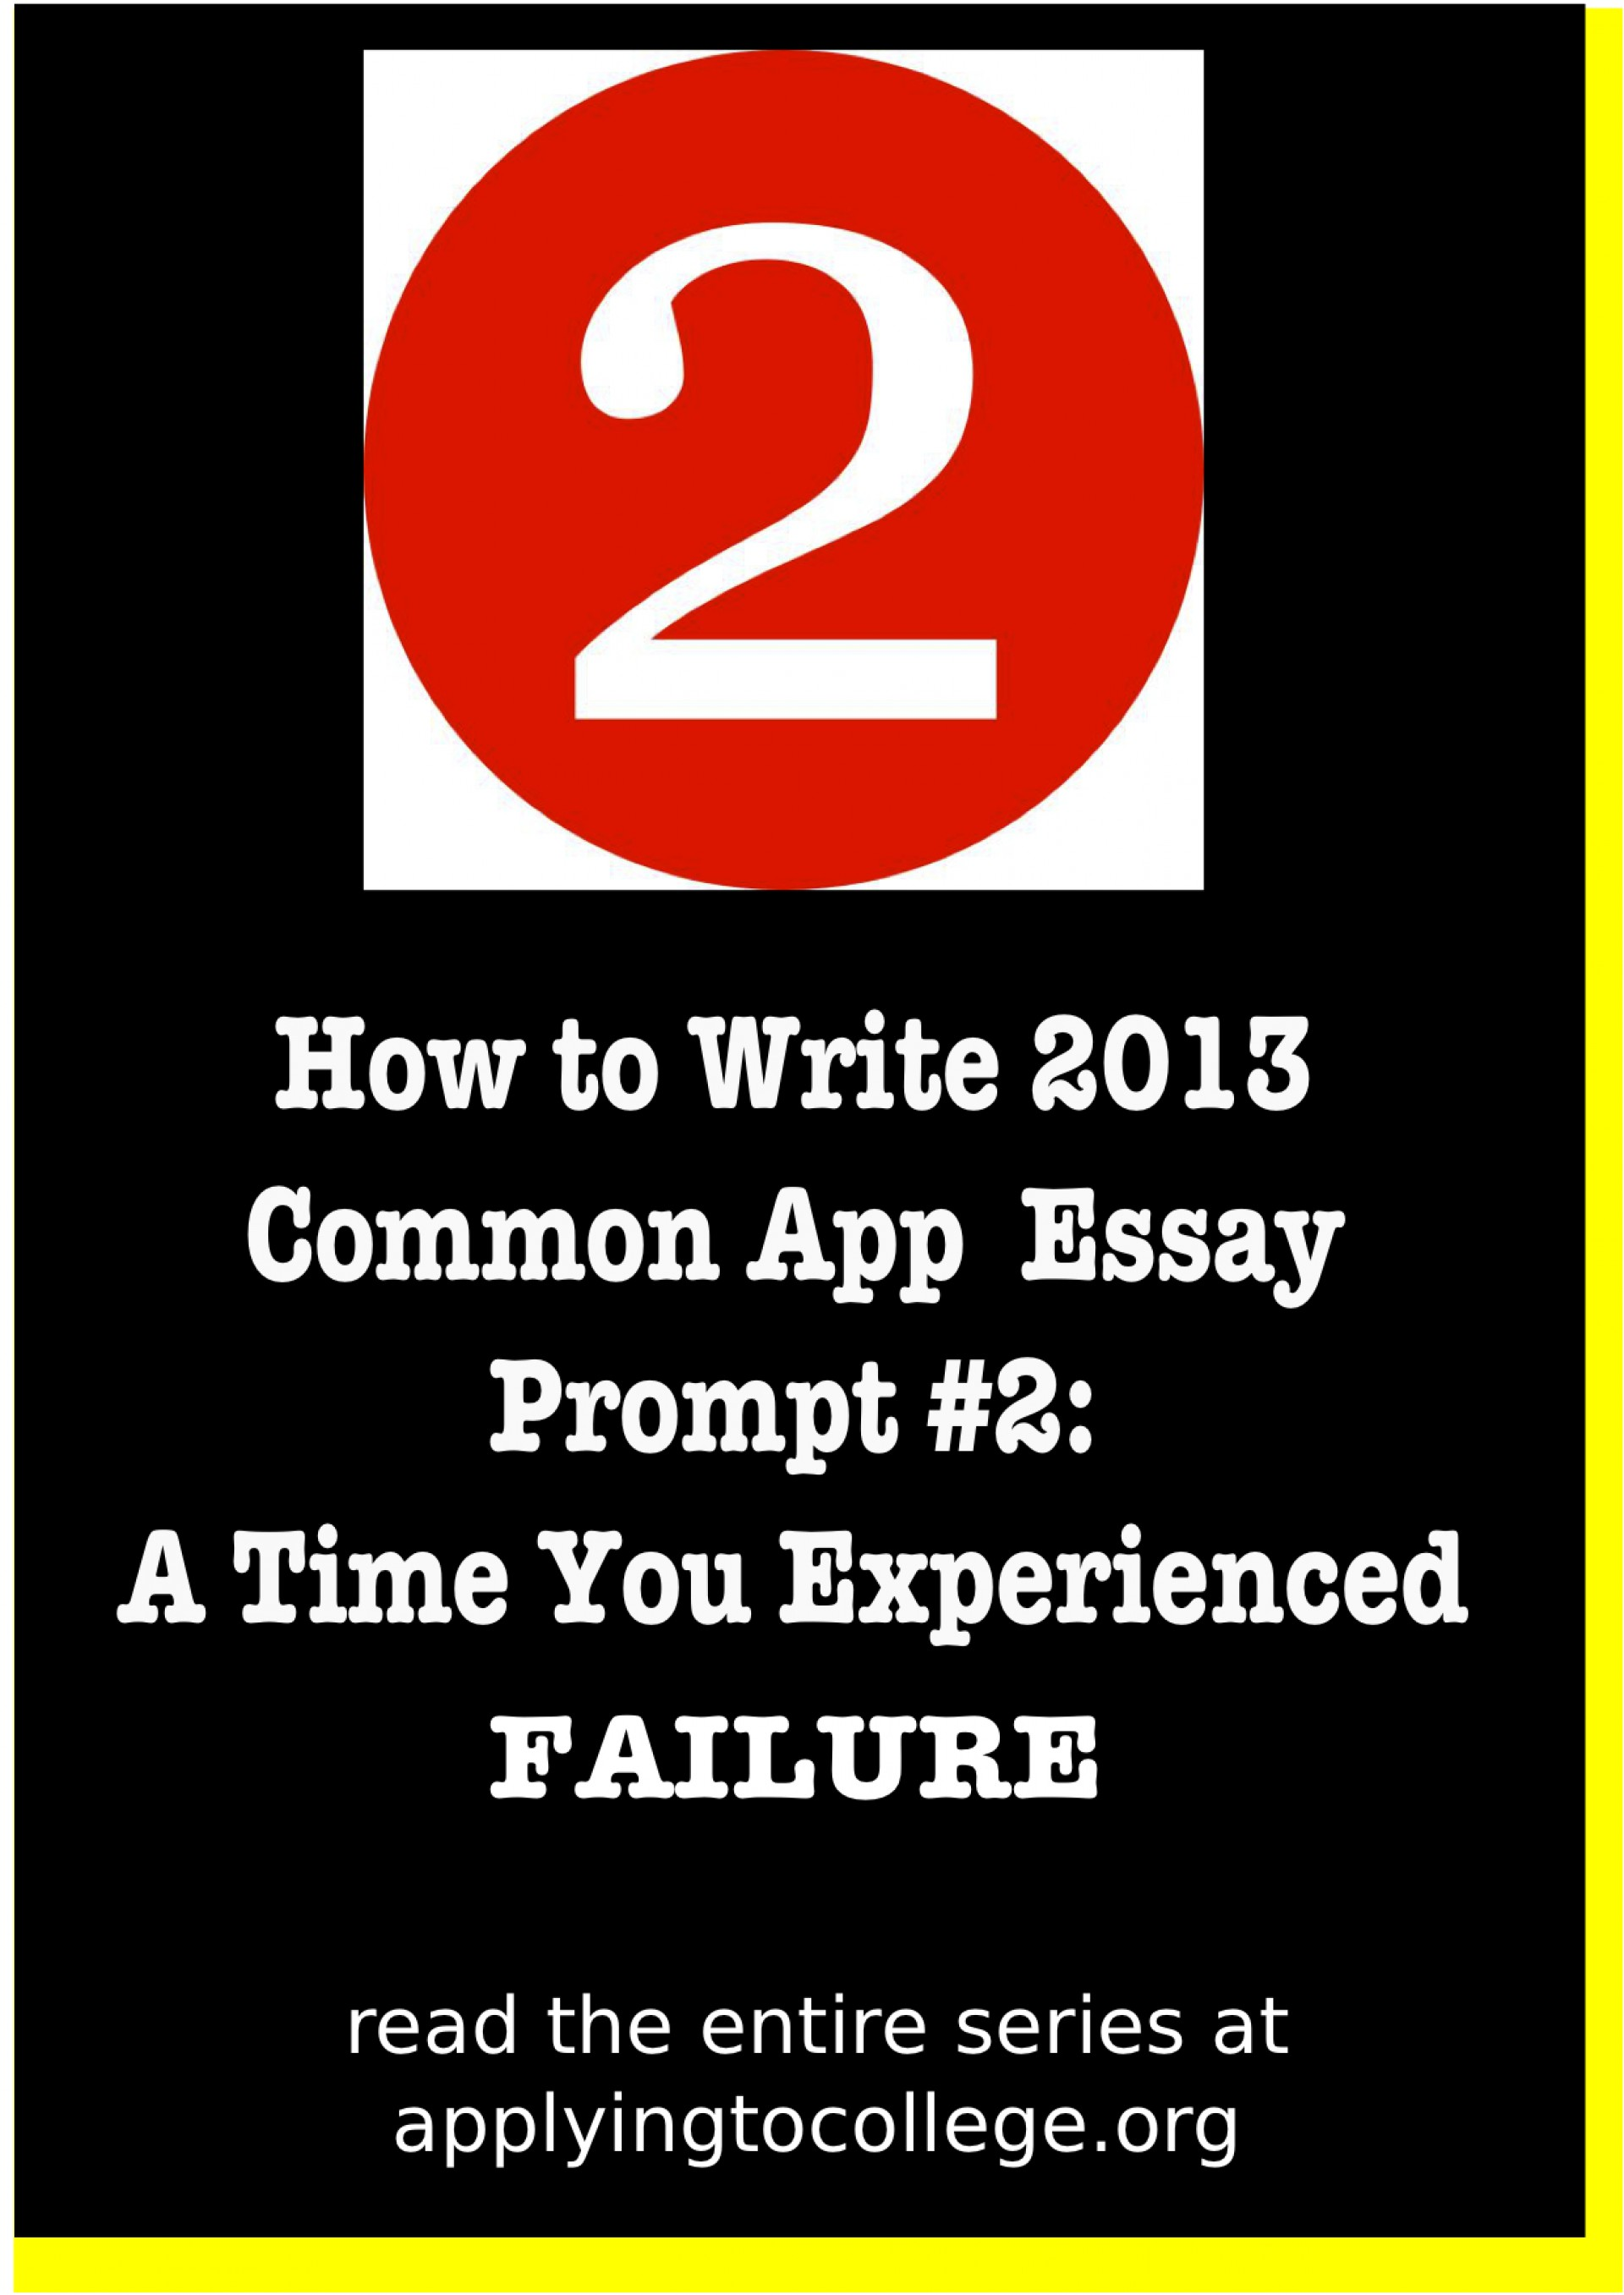 019 How To Write Common App Failure Essay1 Essay Example Prompts Rare 2015-16 1920